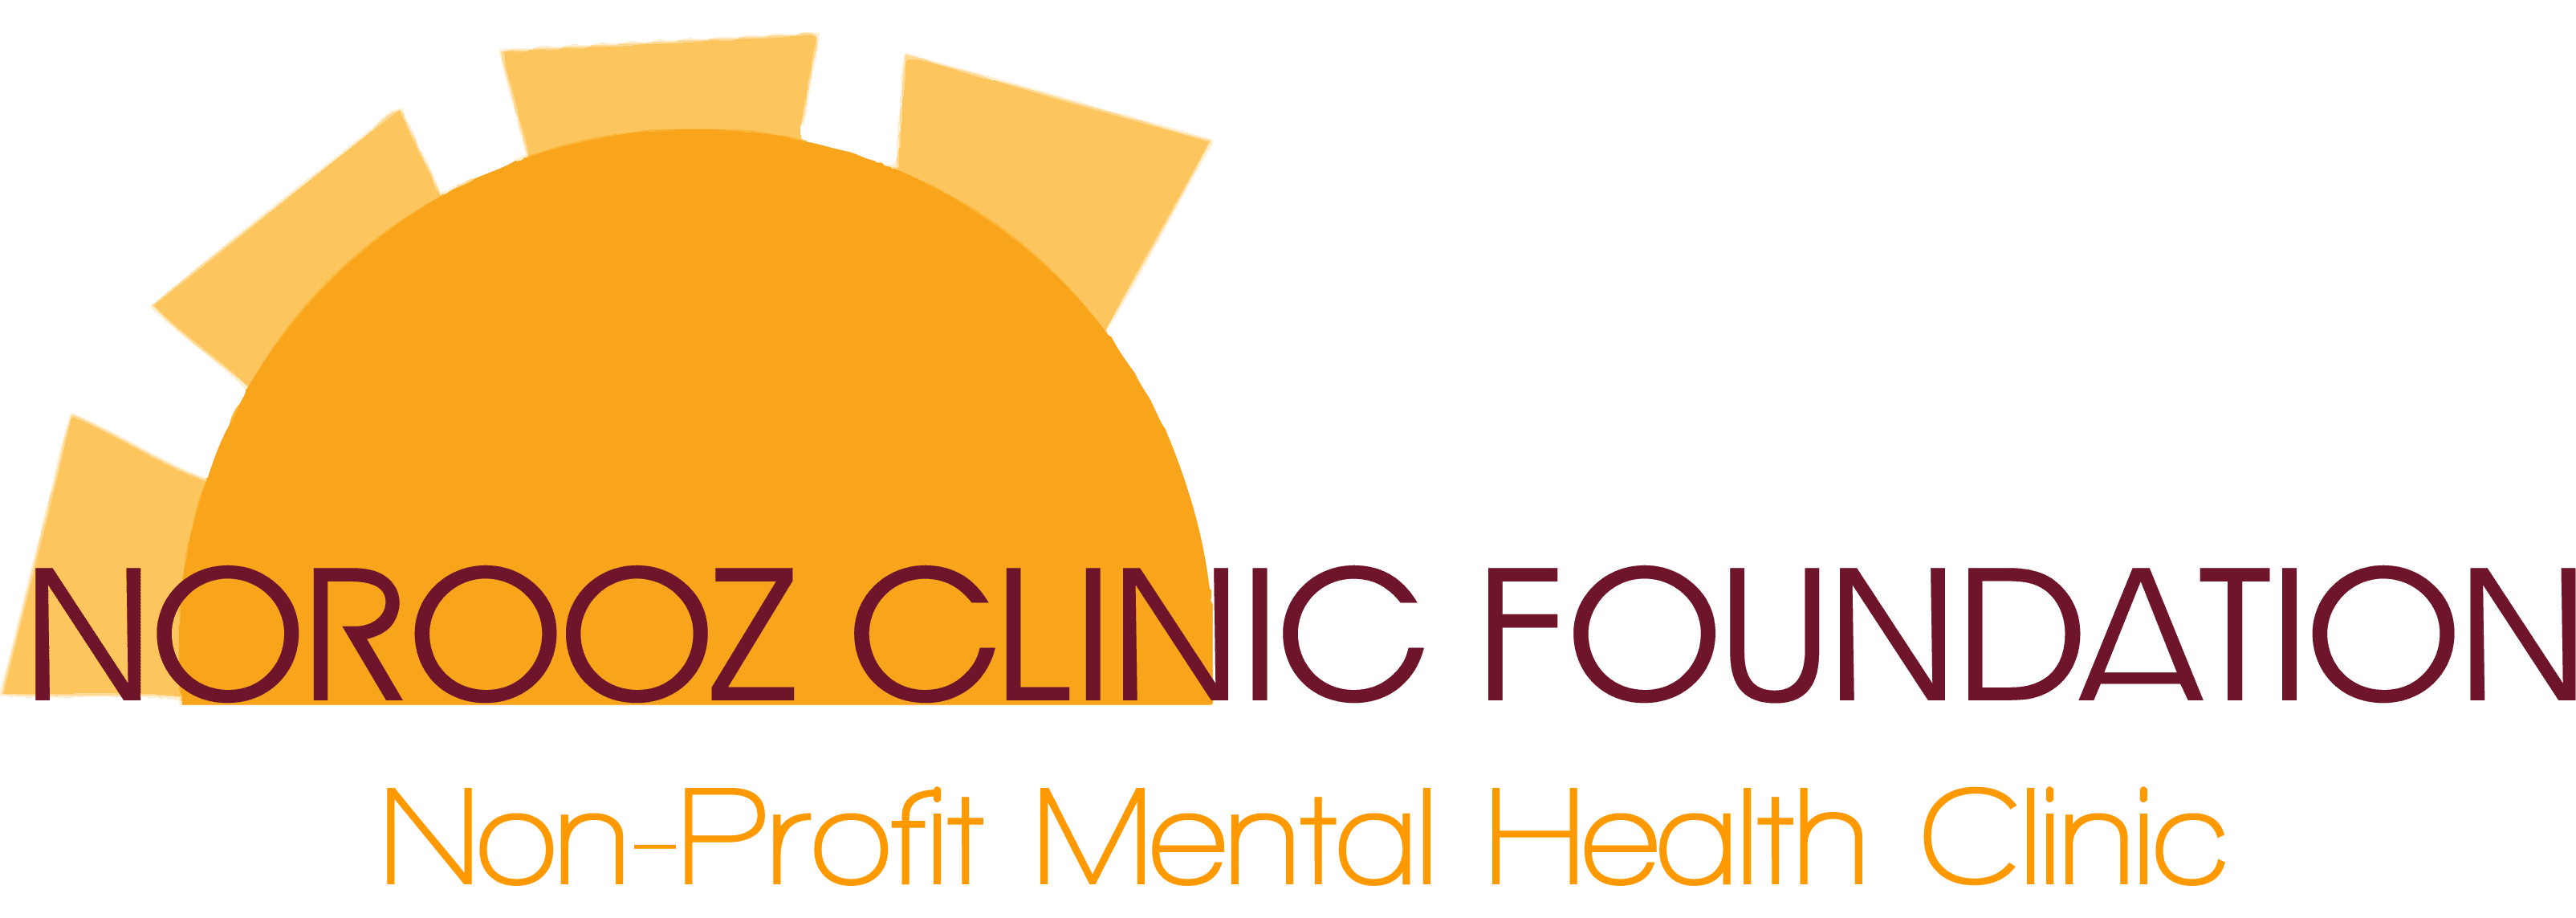 Norooz Clinic Foundation